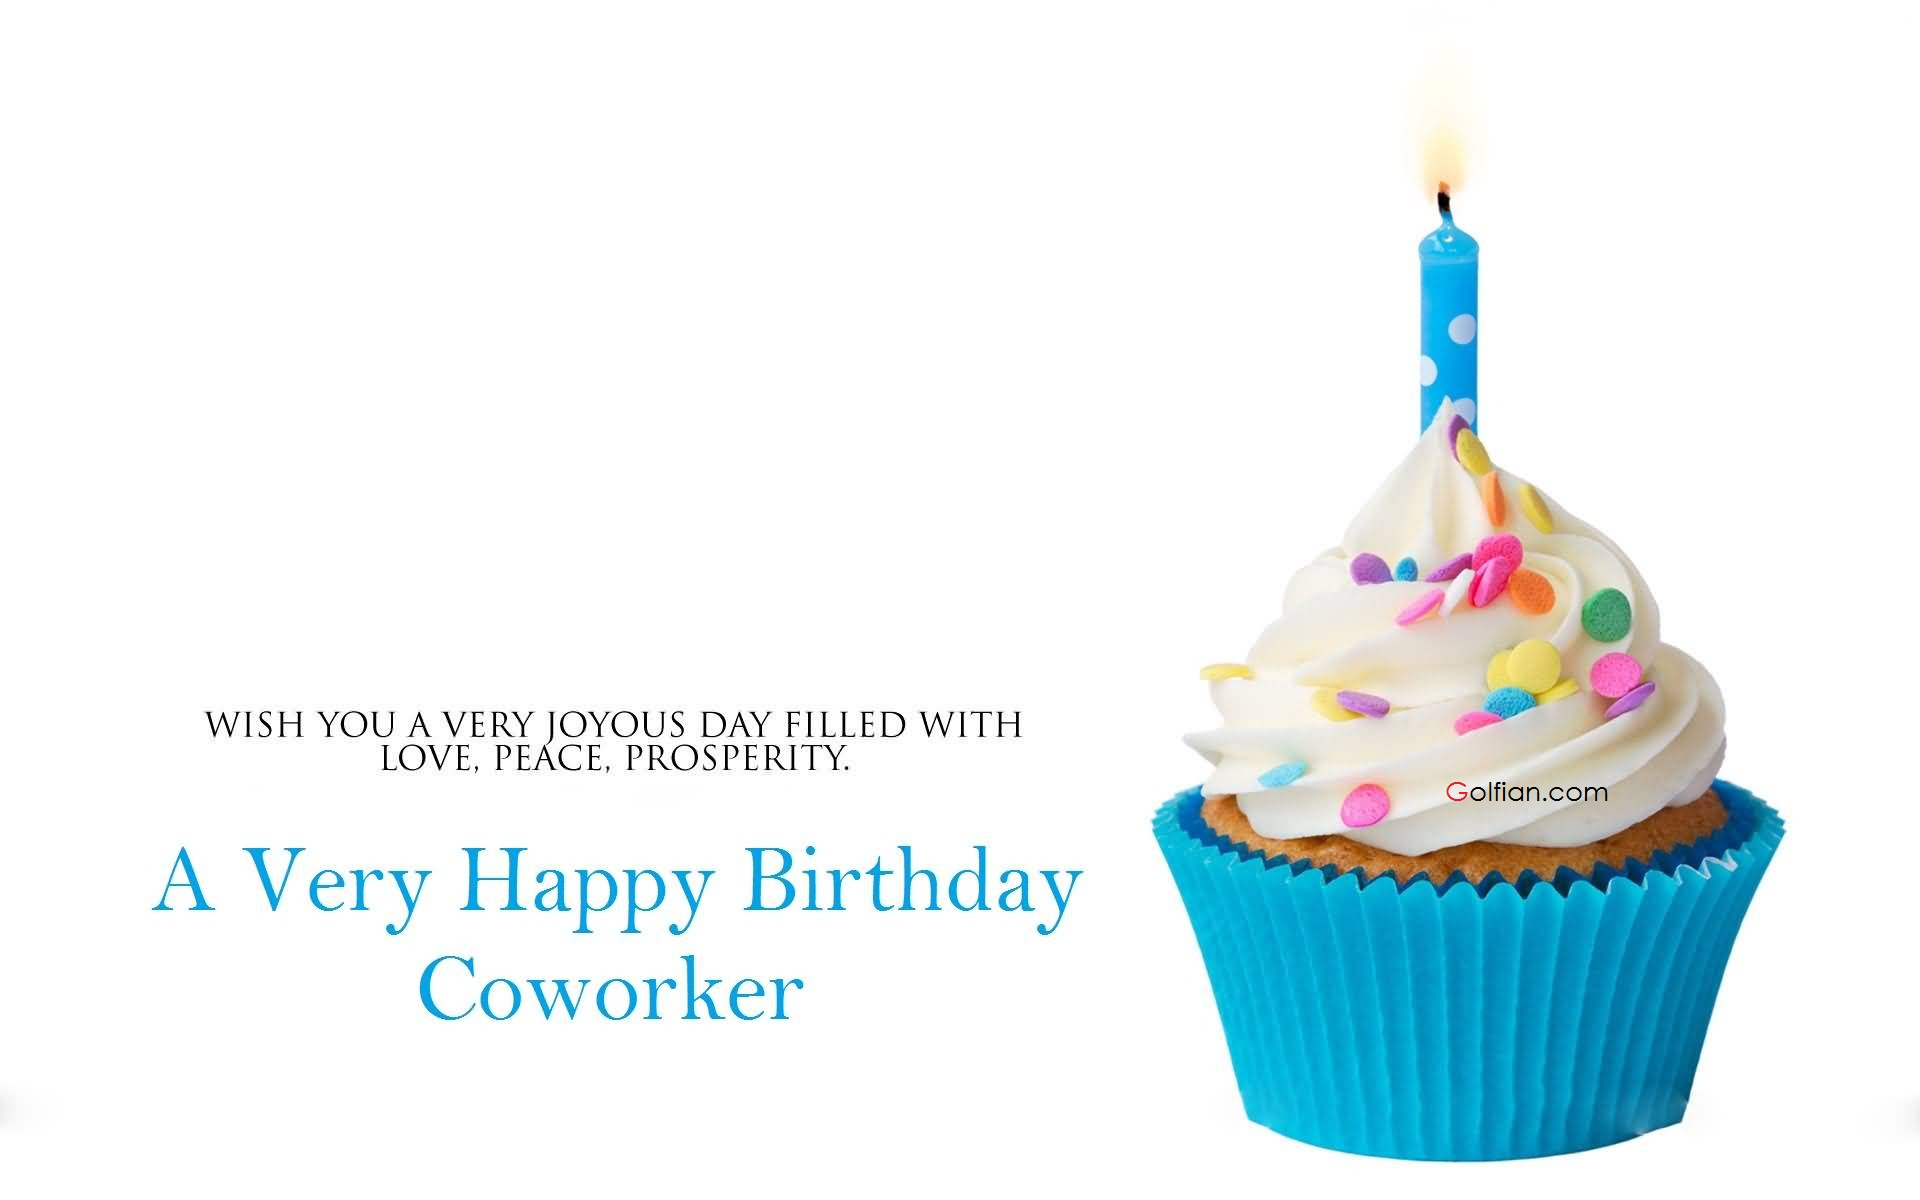 birthday wishes for coworker card ; Tasty-Cup-Cake-Birthday-Wishes-For-Coworker-E-Card